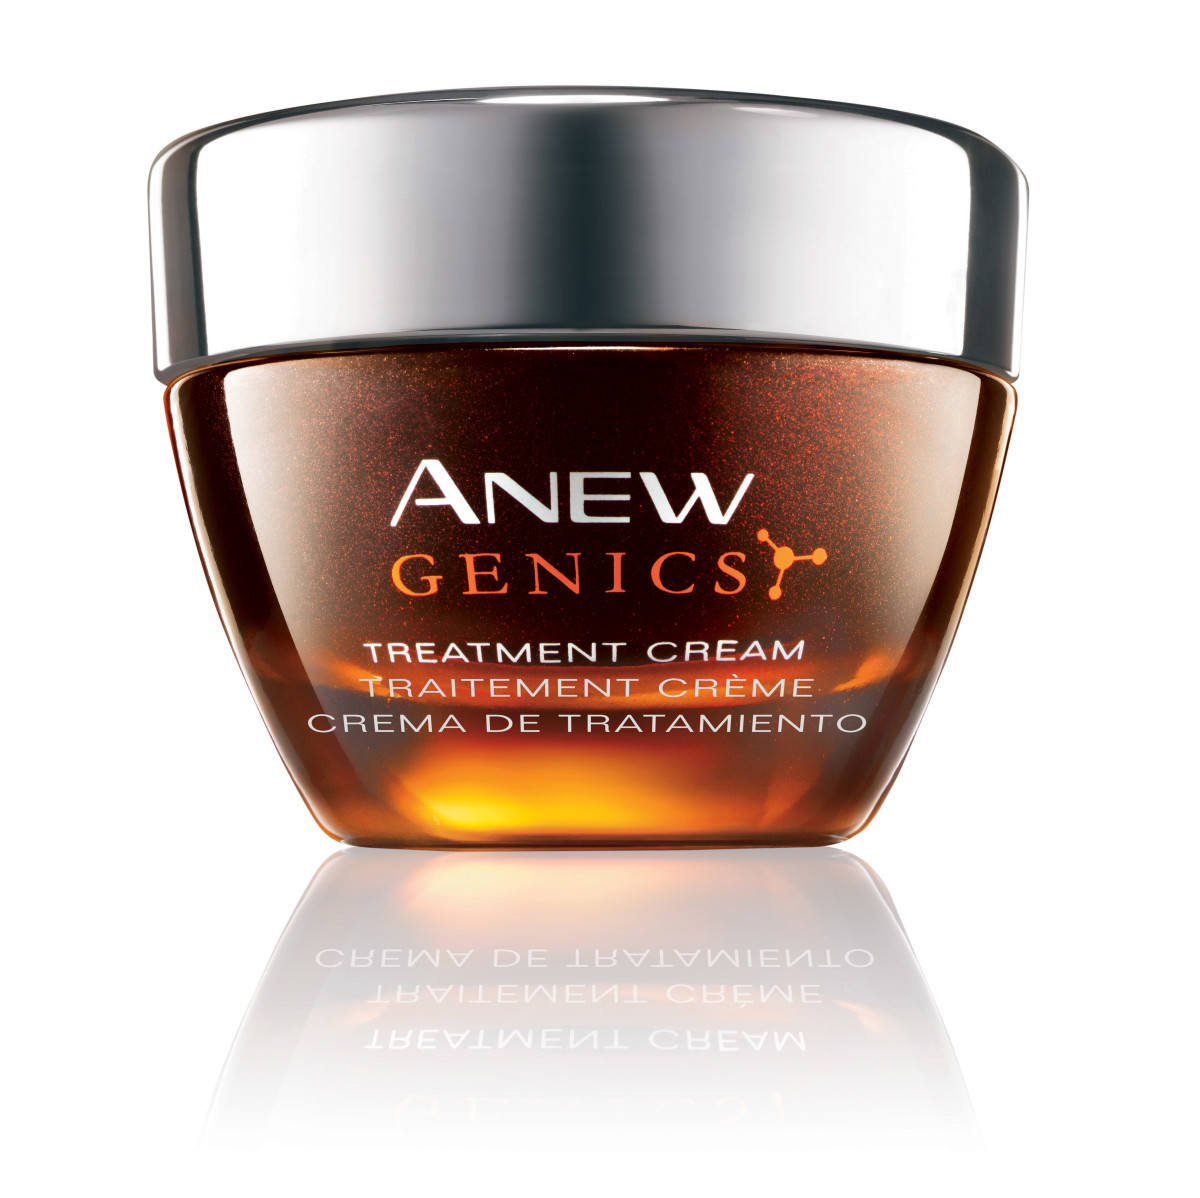 Anew_Genics_Product_Shot_1